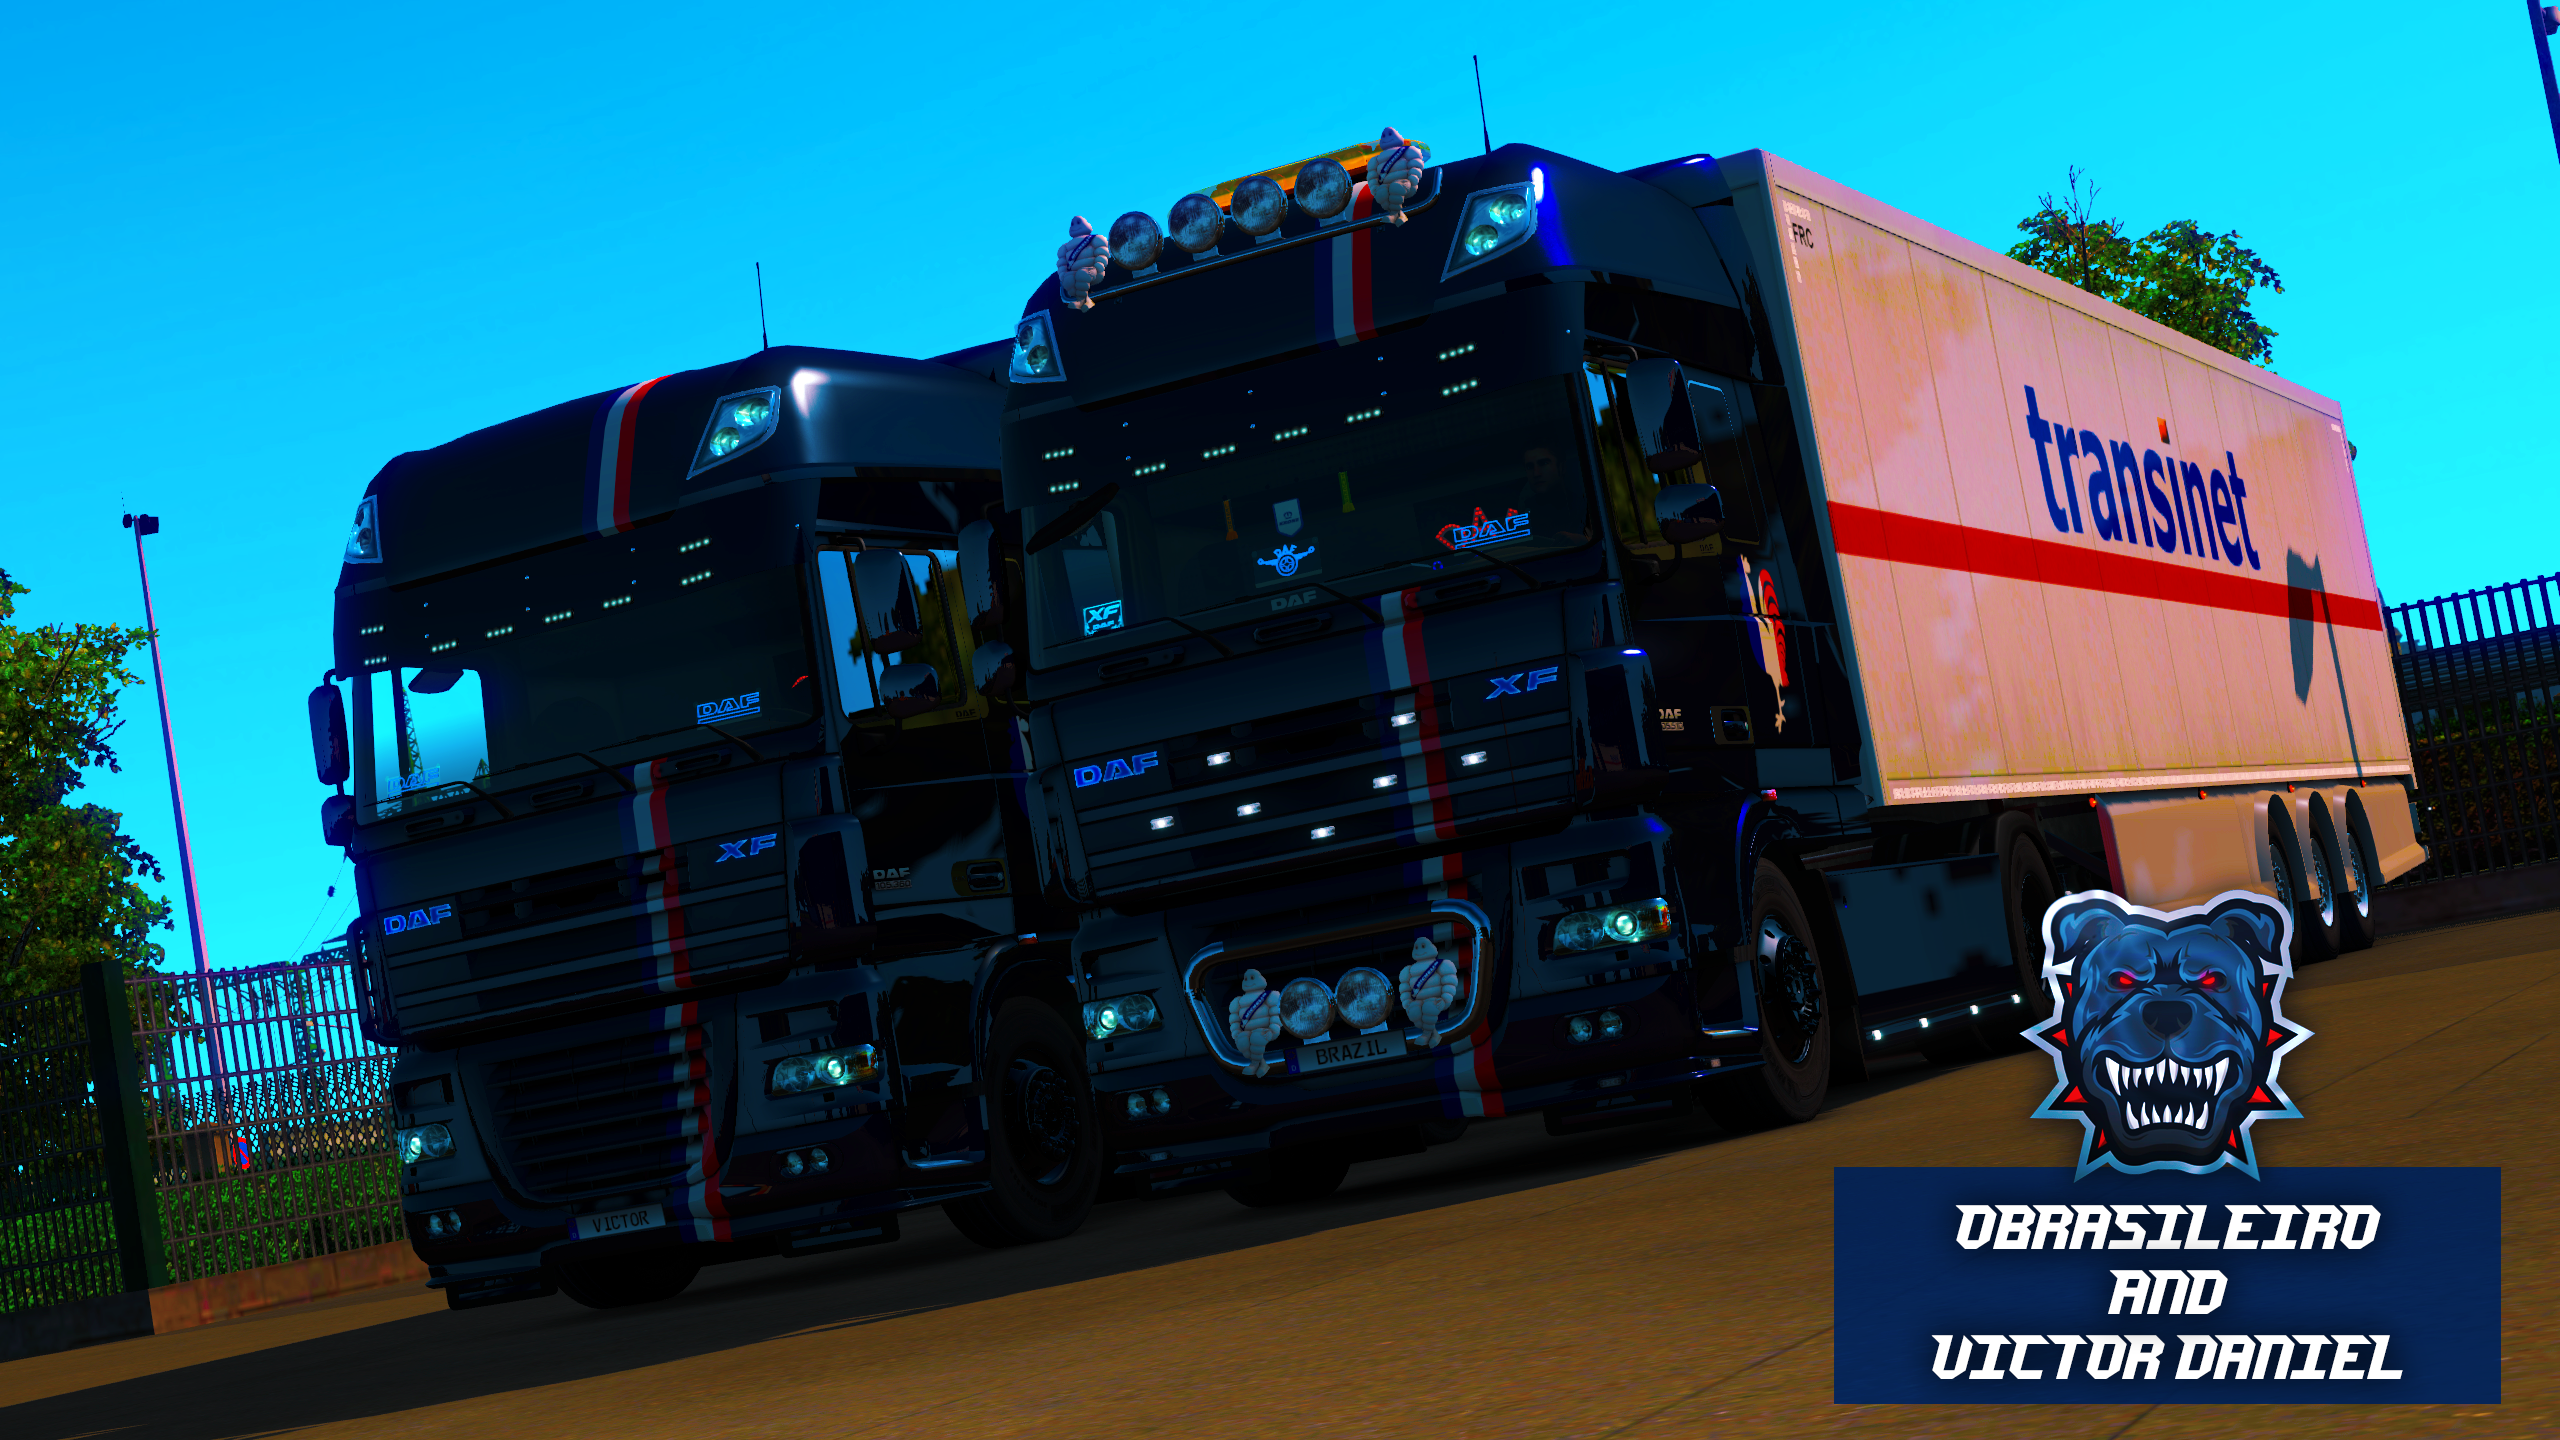 ets2_20181115_214343_00.png